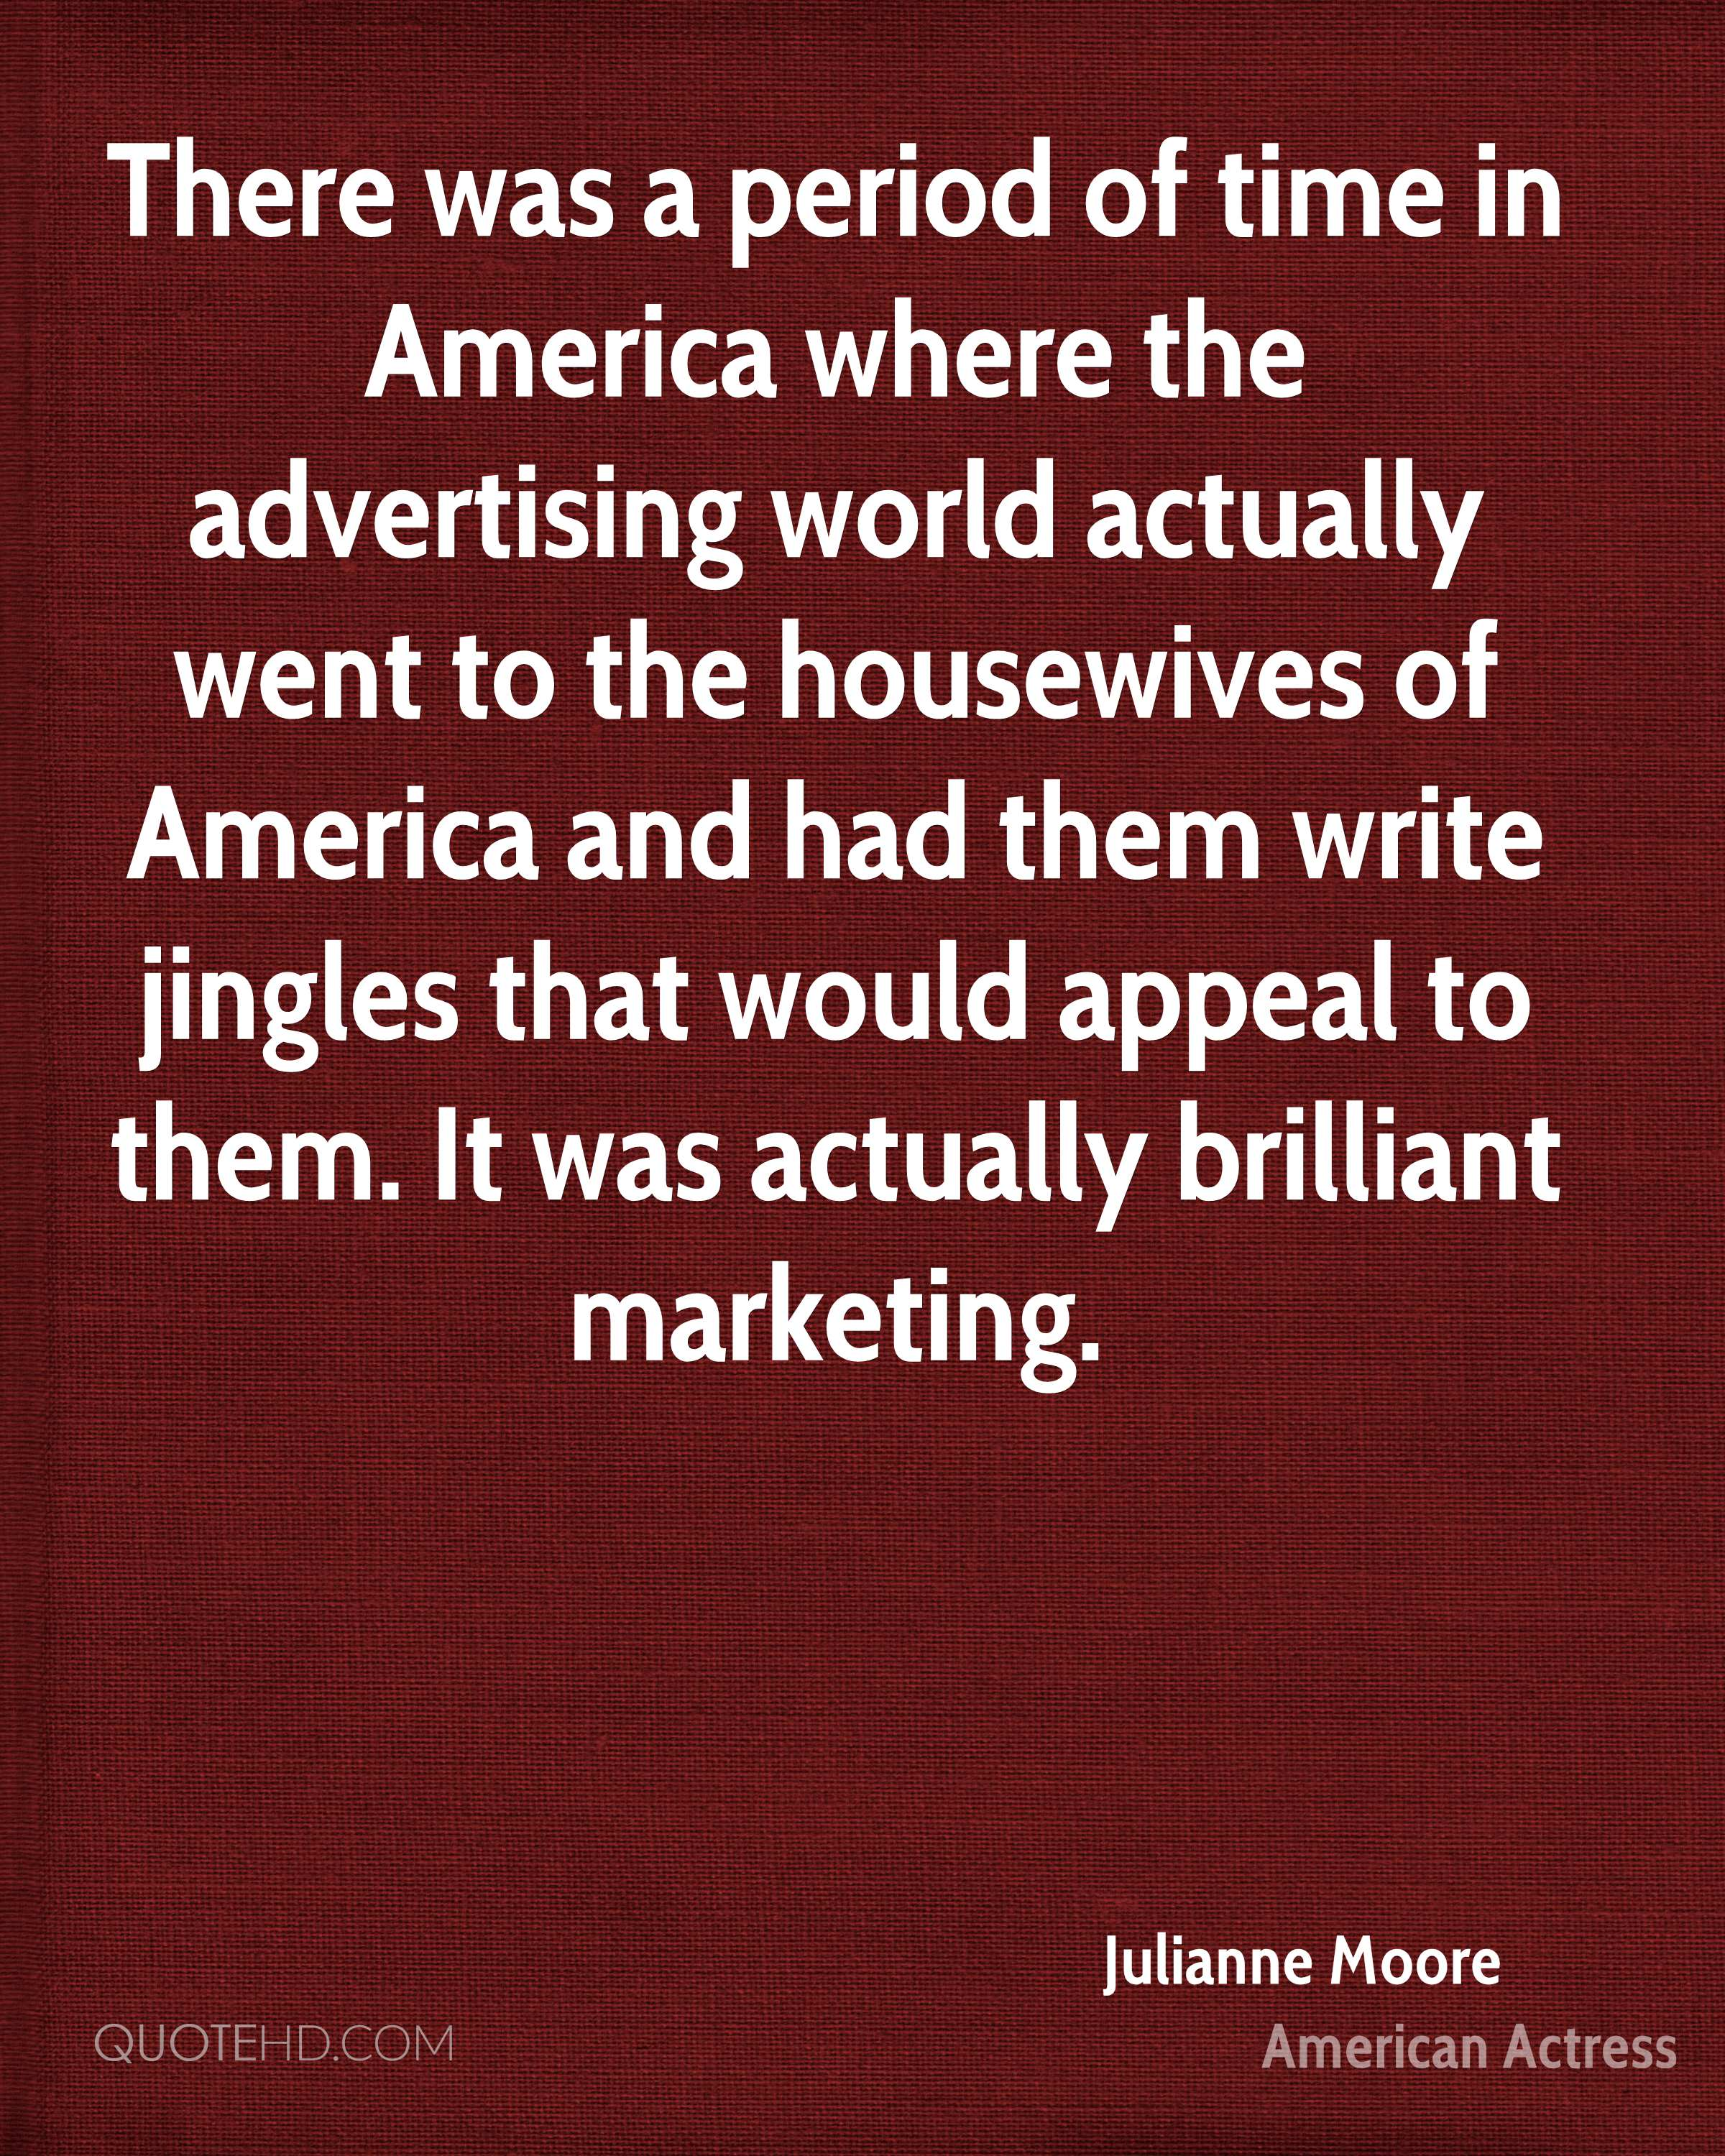 There was a period of time in America where the advertising world actually went to the housewives of America and had them write jingles that would appeal to them. It was actually brilliant marketing.